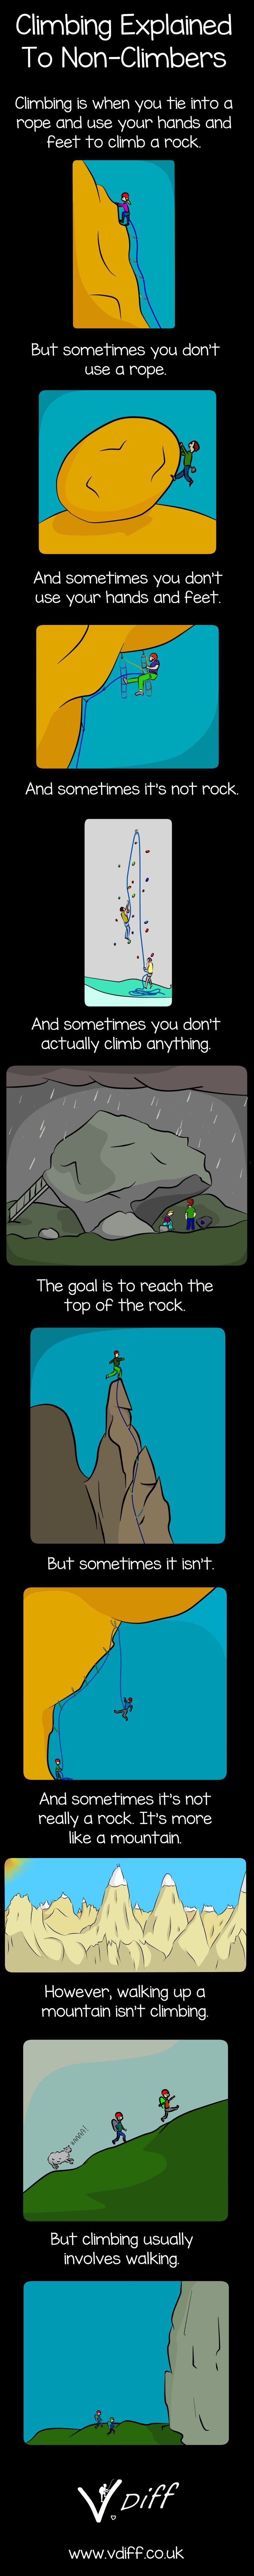 Rock climbing explained to non-climbers.